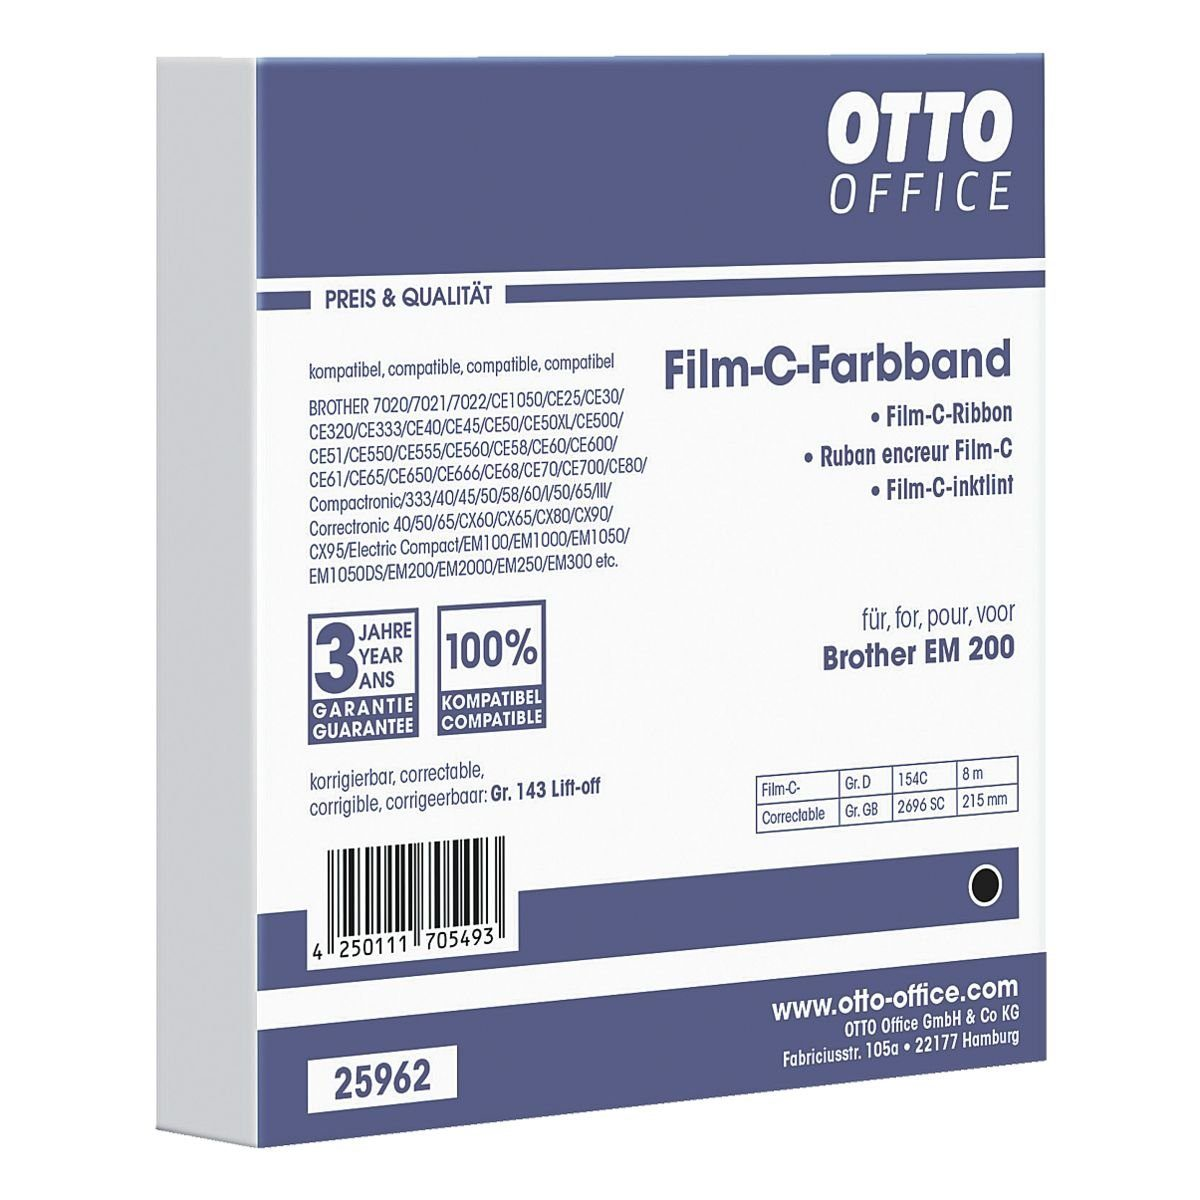 OTTO Office Carbon-Farbband